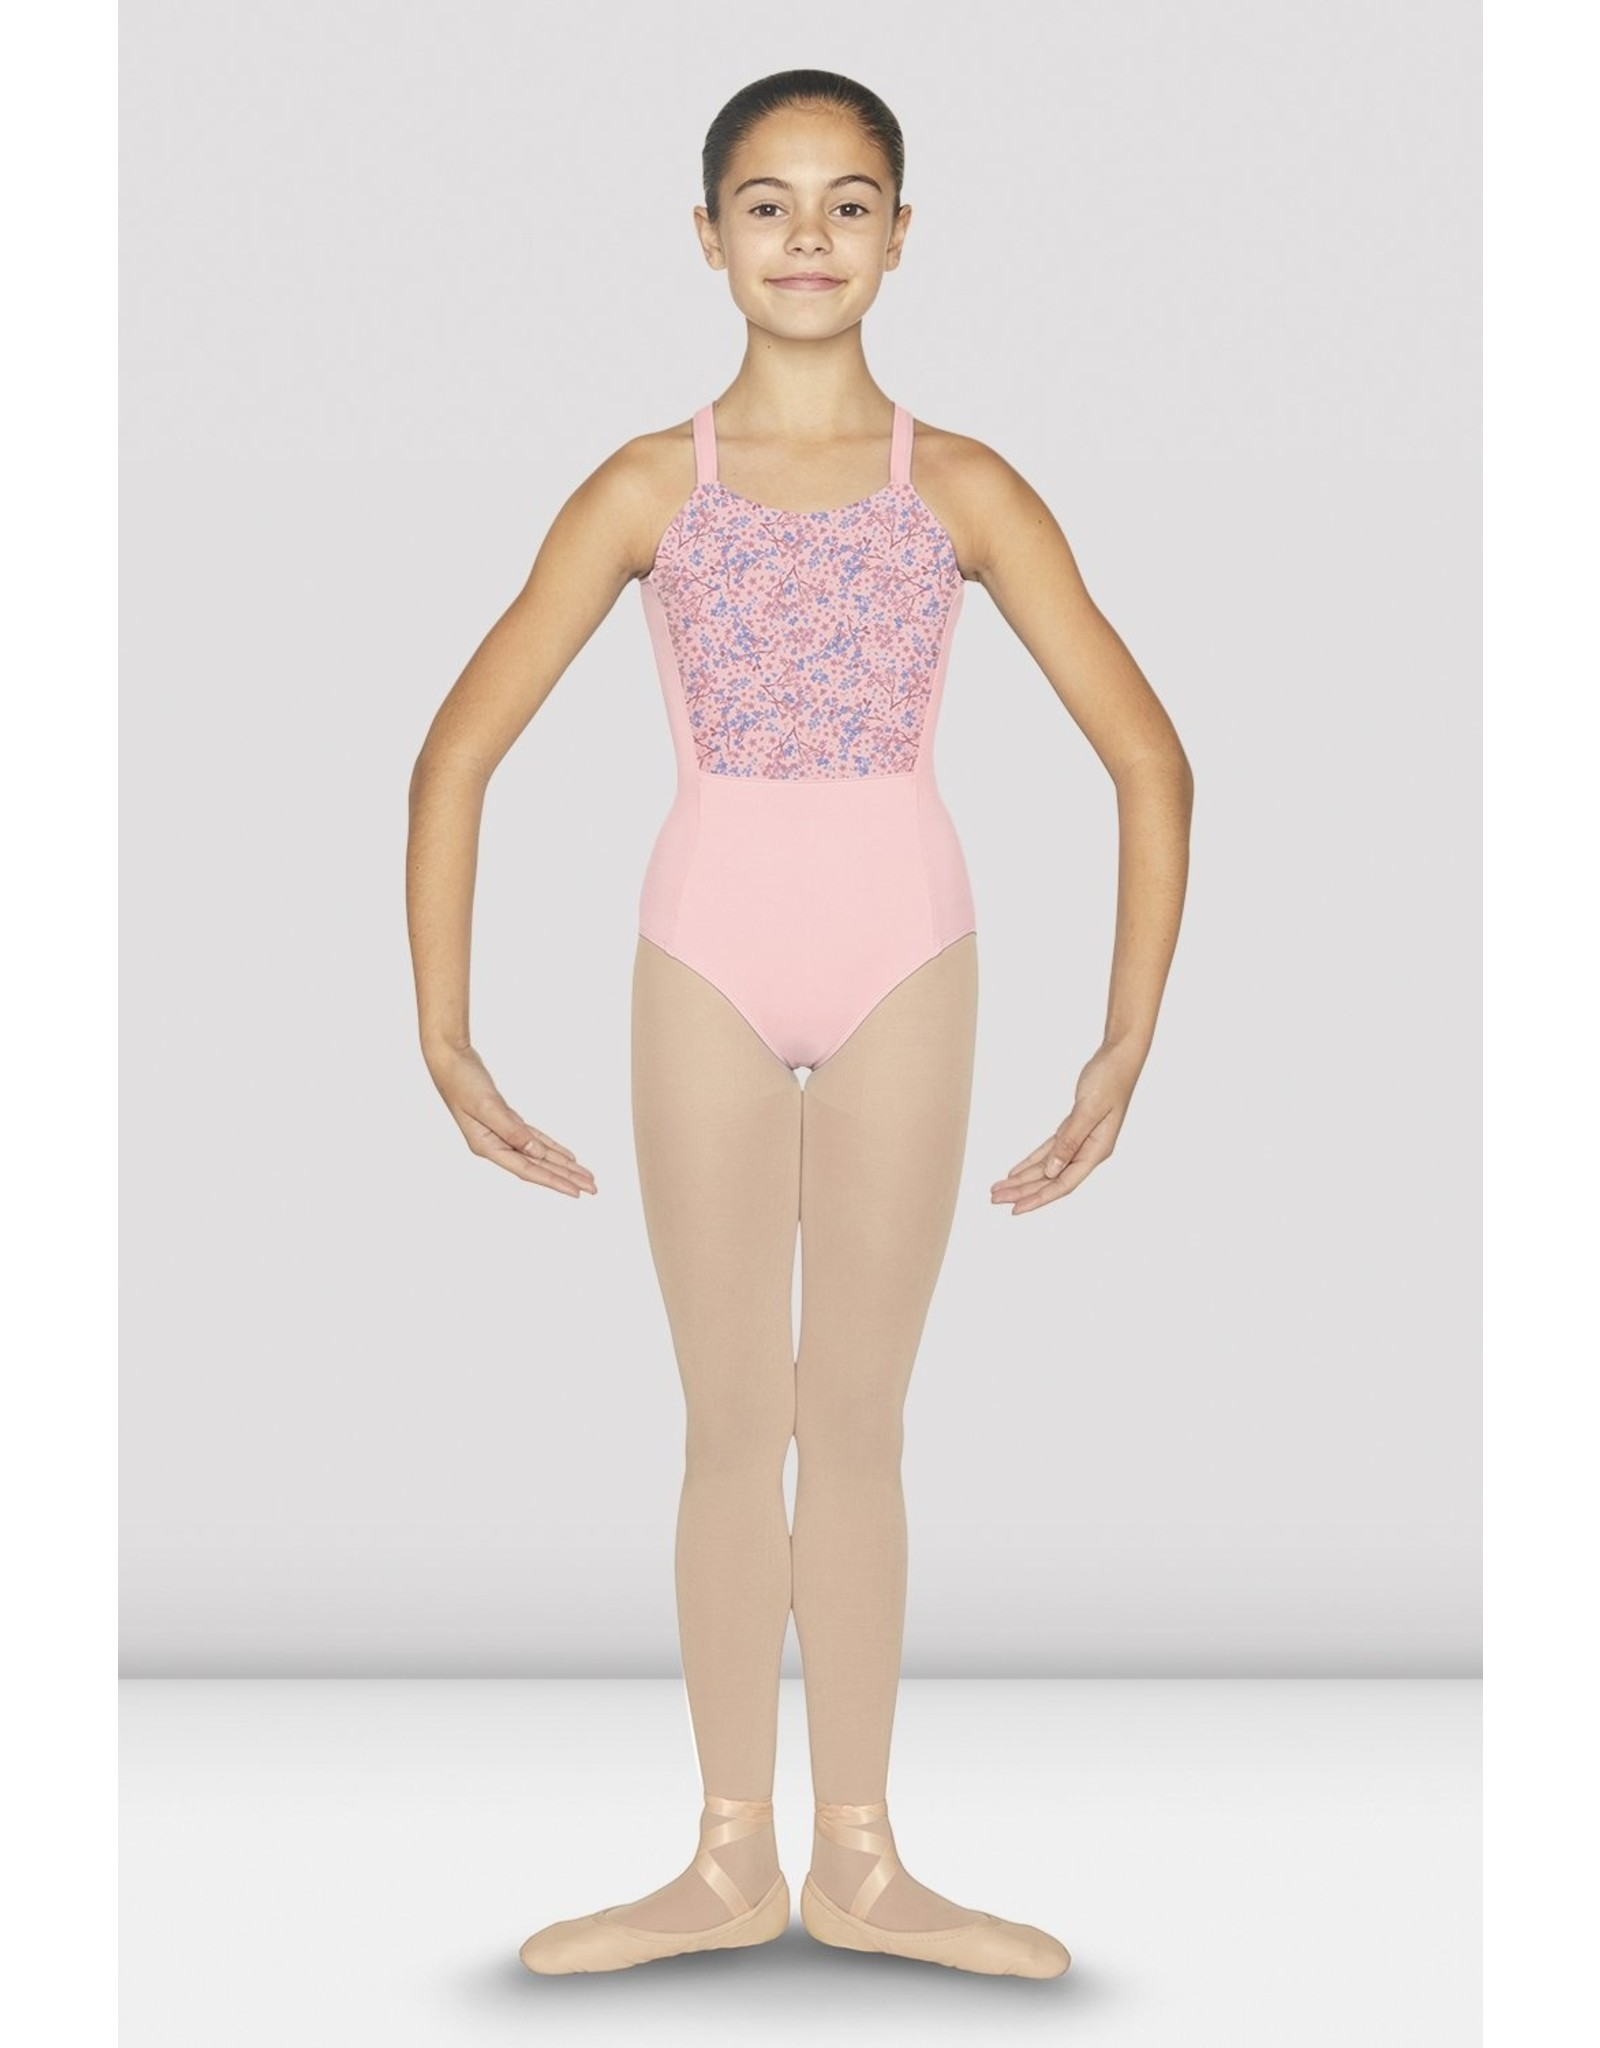 BLOCH LAINA LOOP BACK WIDE CAMISOLE LEOTARD